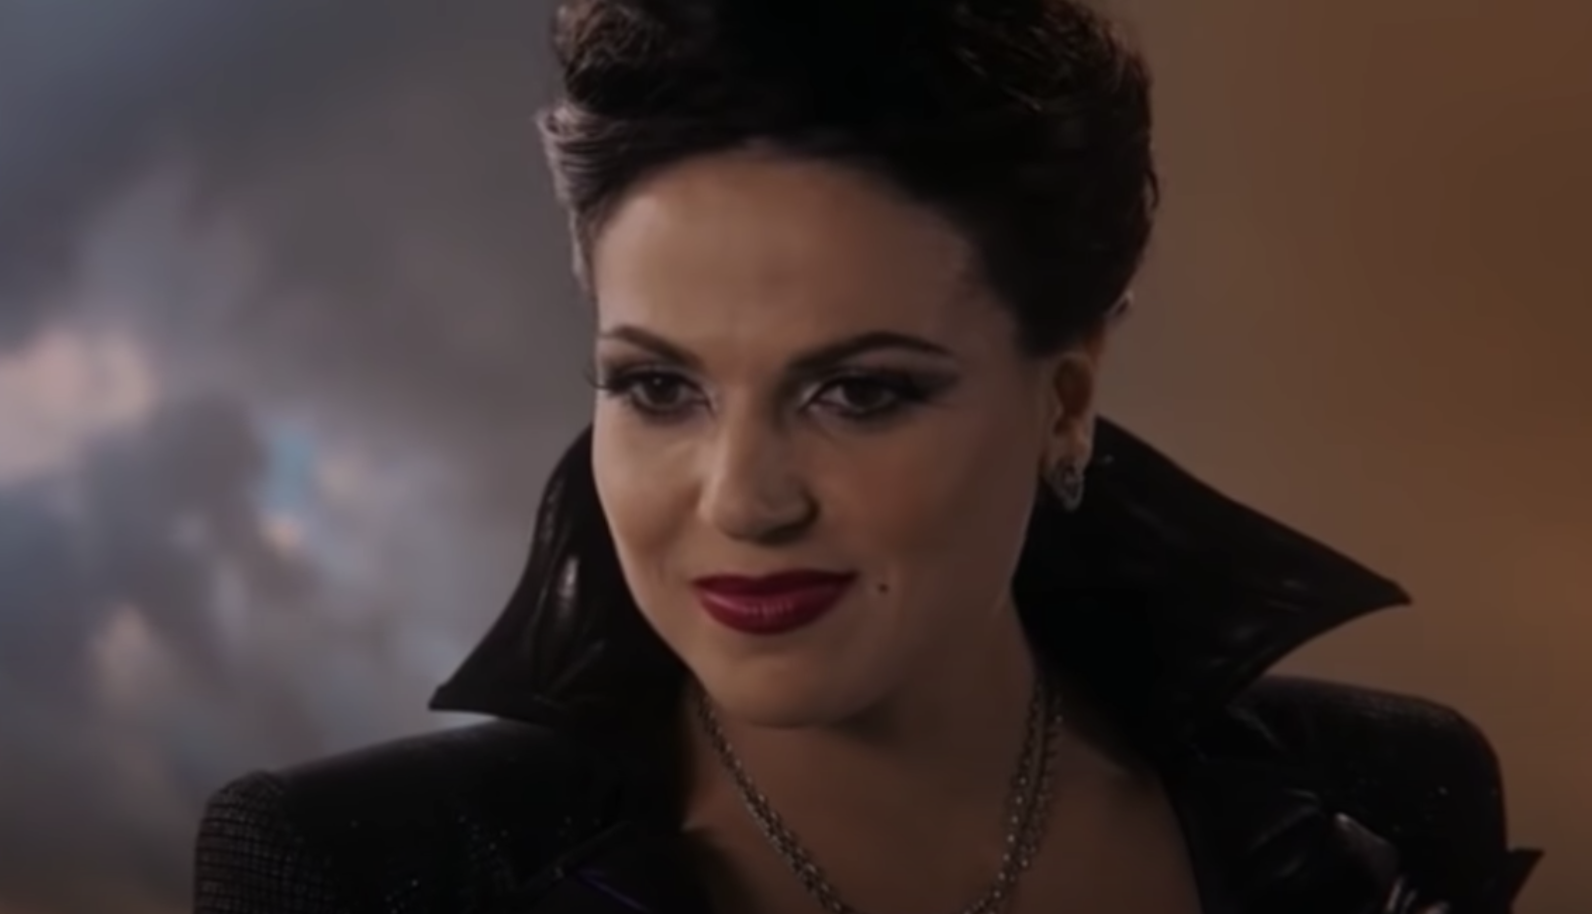 Regina as the evil queen grinning